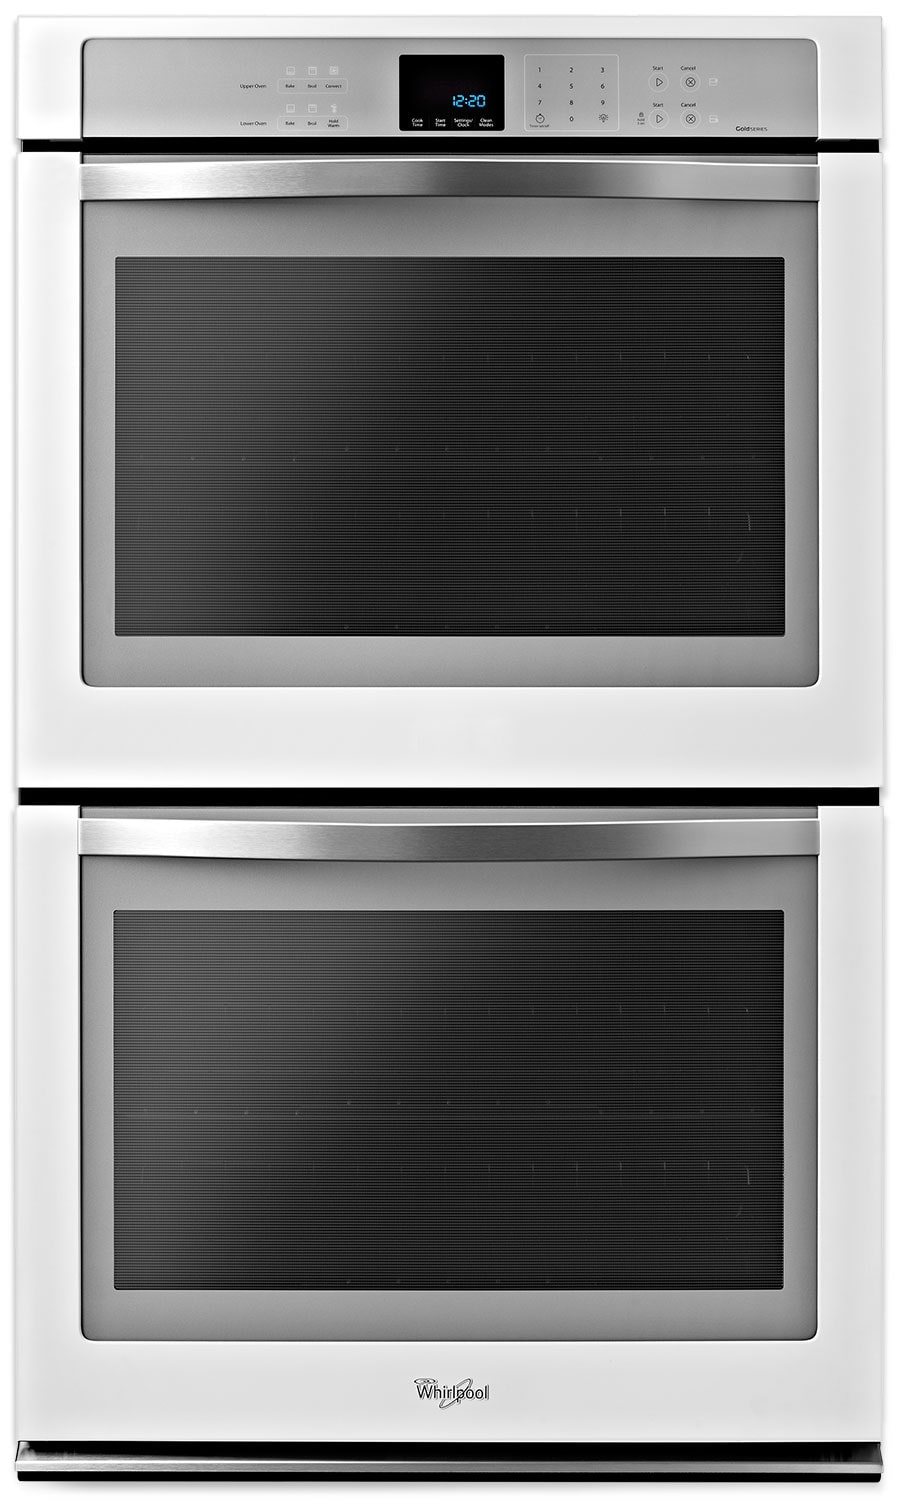 Cooking Products - Whirlpool White Convection Double Wall Oven (10 Cu. Ft.) - WOD93EC0AH